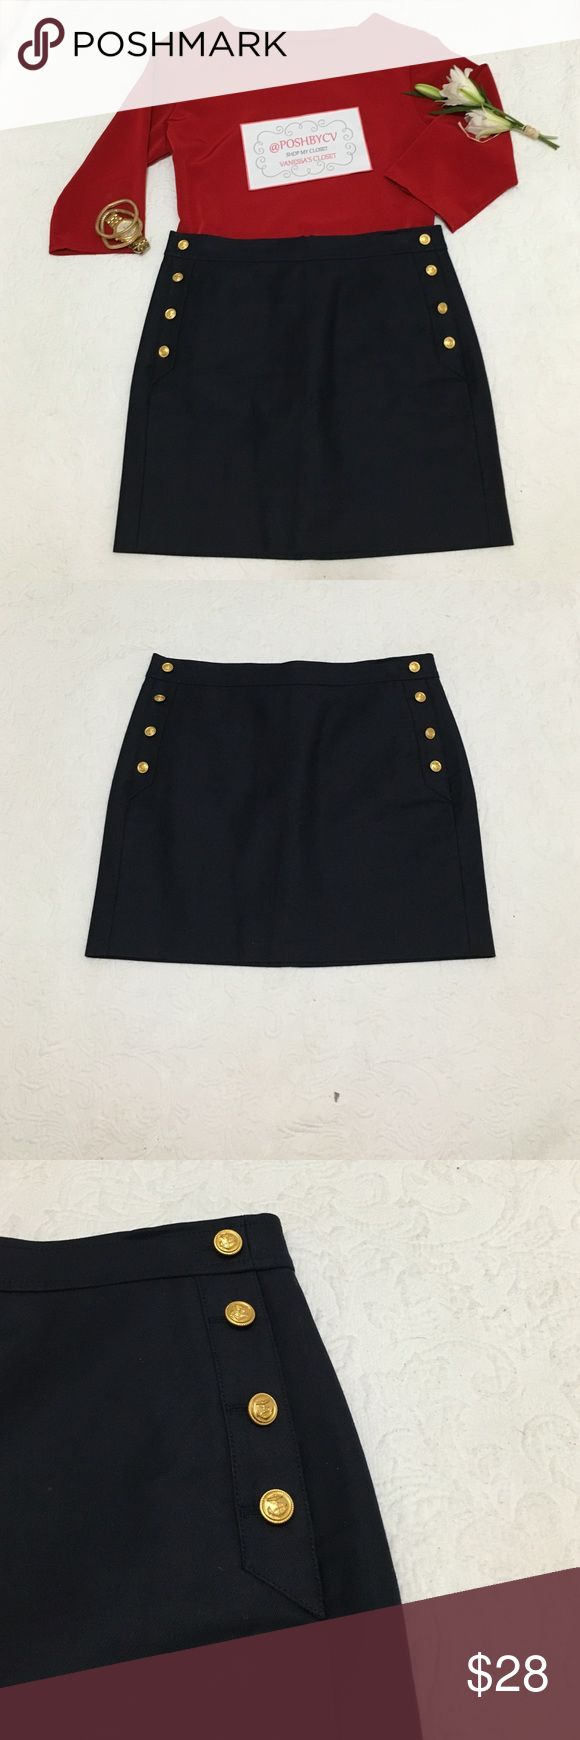 J. Crew Nautical Skirt ! Beautiful Navy Sailor Skirt ! Gold buttons with anchor details ! Front & back pockets ! J. Crew Skirts Midi